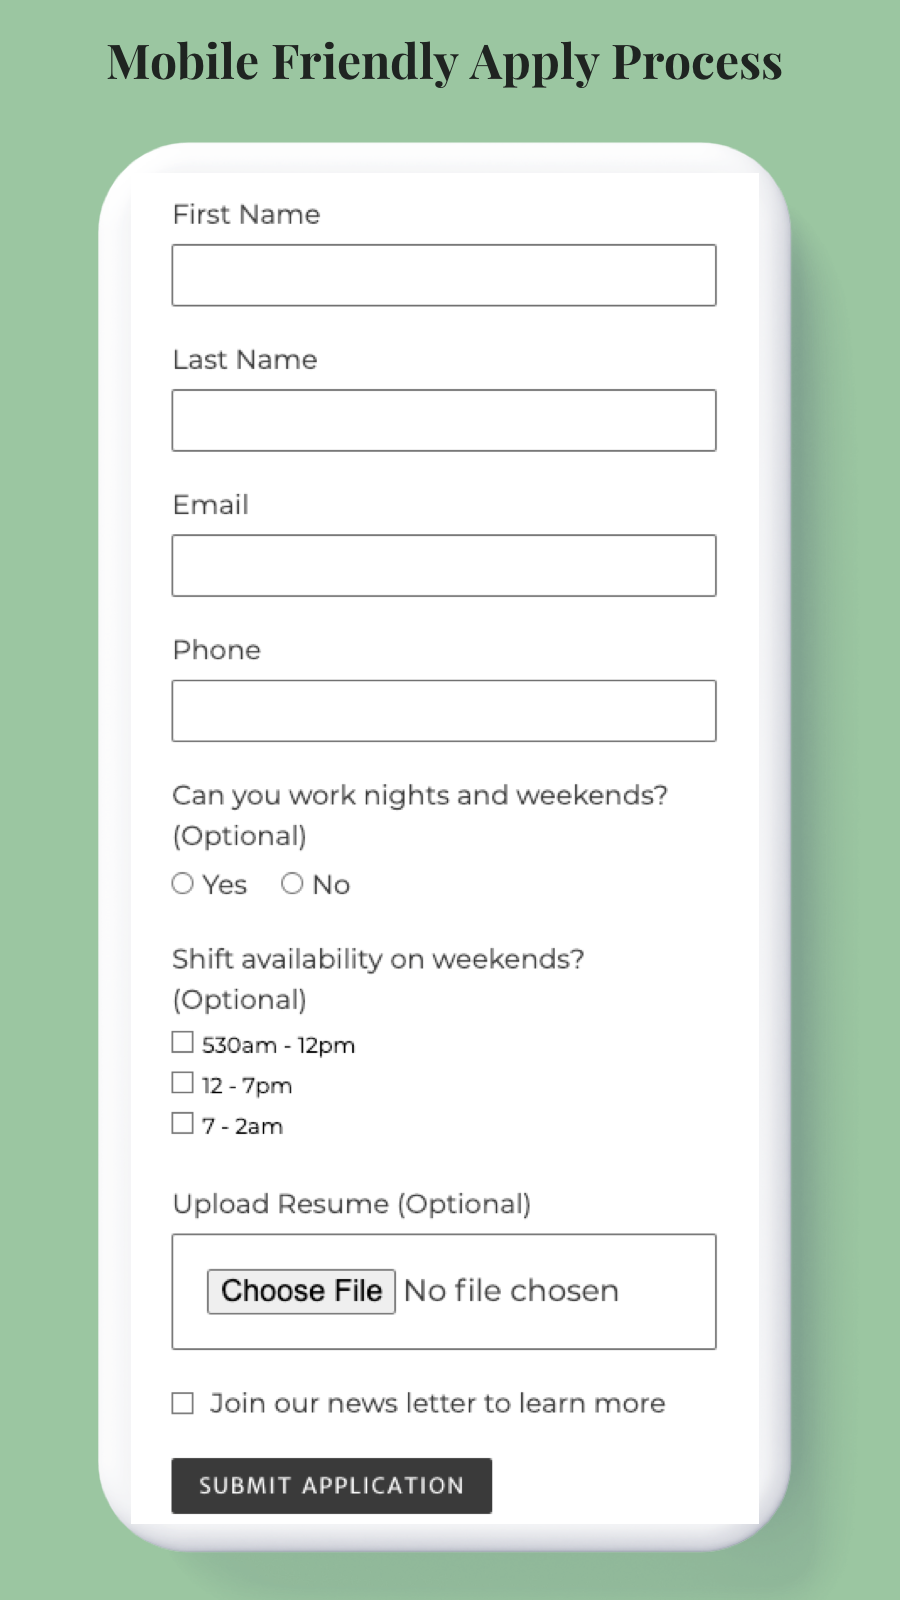 Mobile friendly apply process